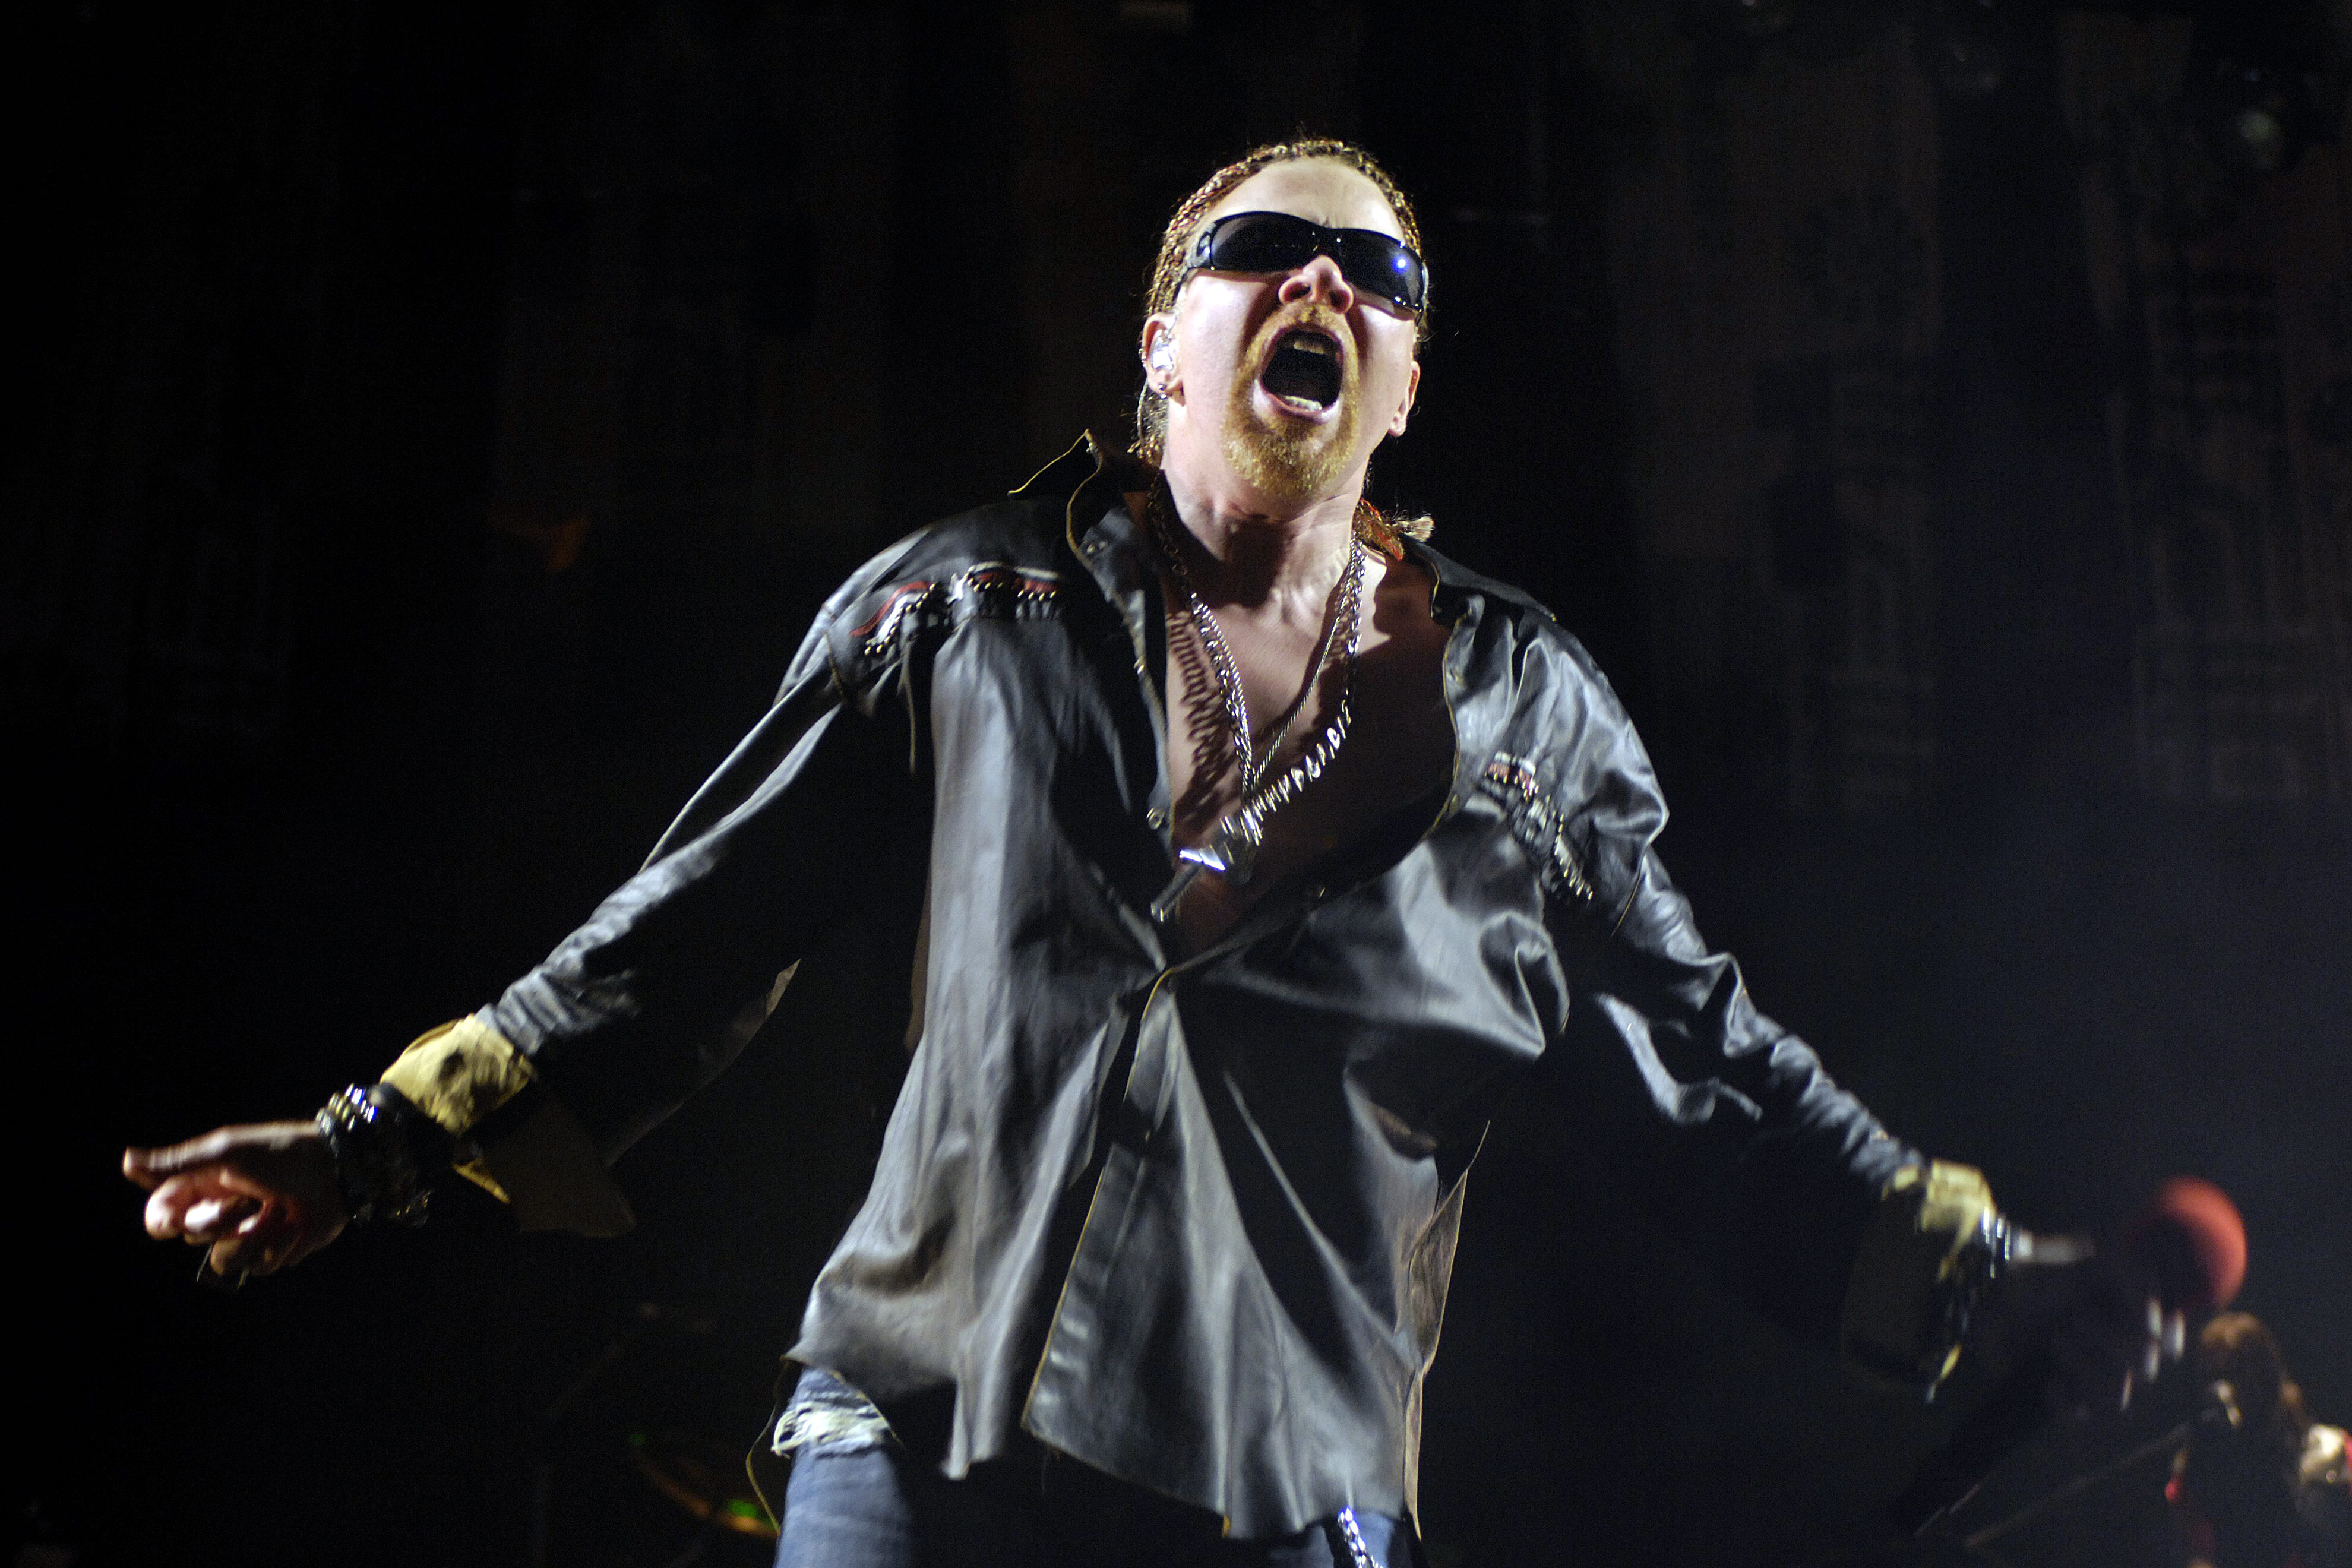 ffeacfcbb AUSTRALIA - JUNE 15: ROD LAVER ARENA Photo of GUNS AND ROSES and Axl ROSE